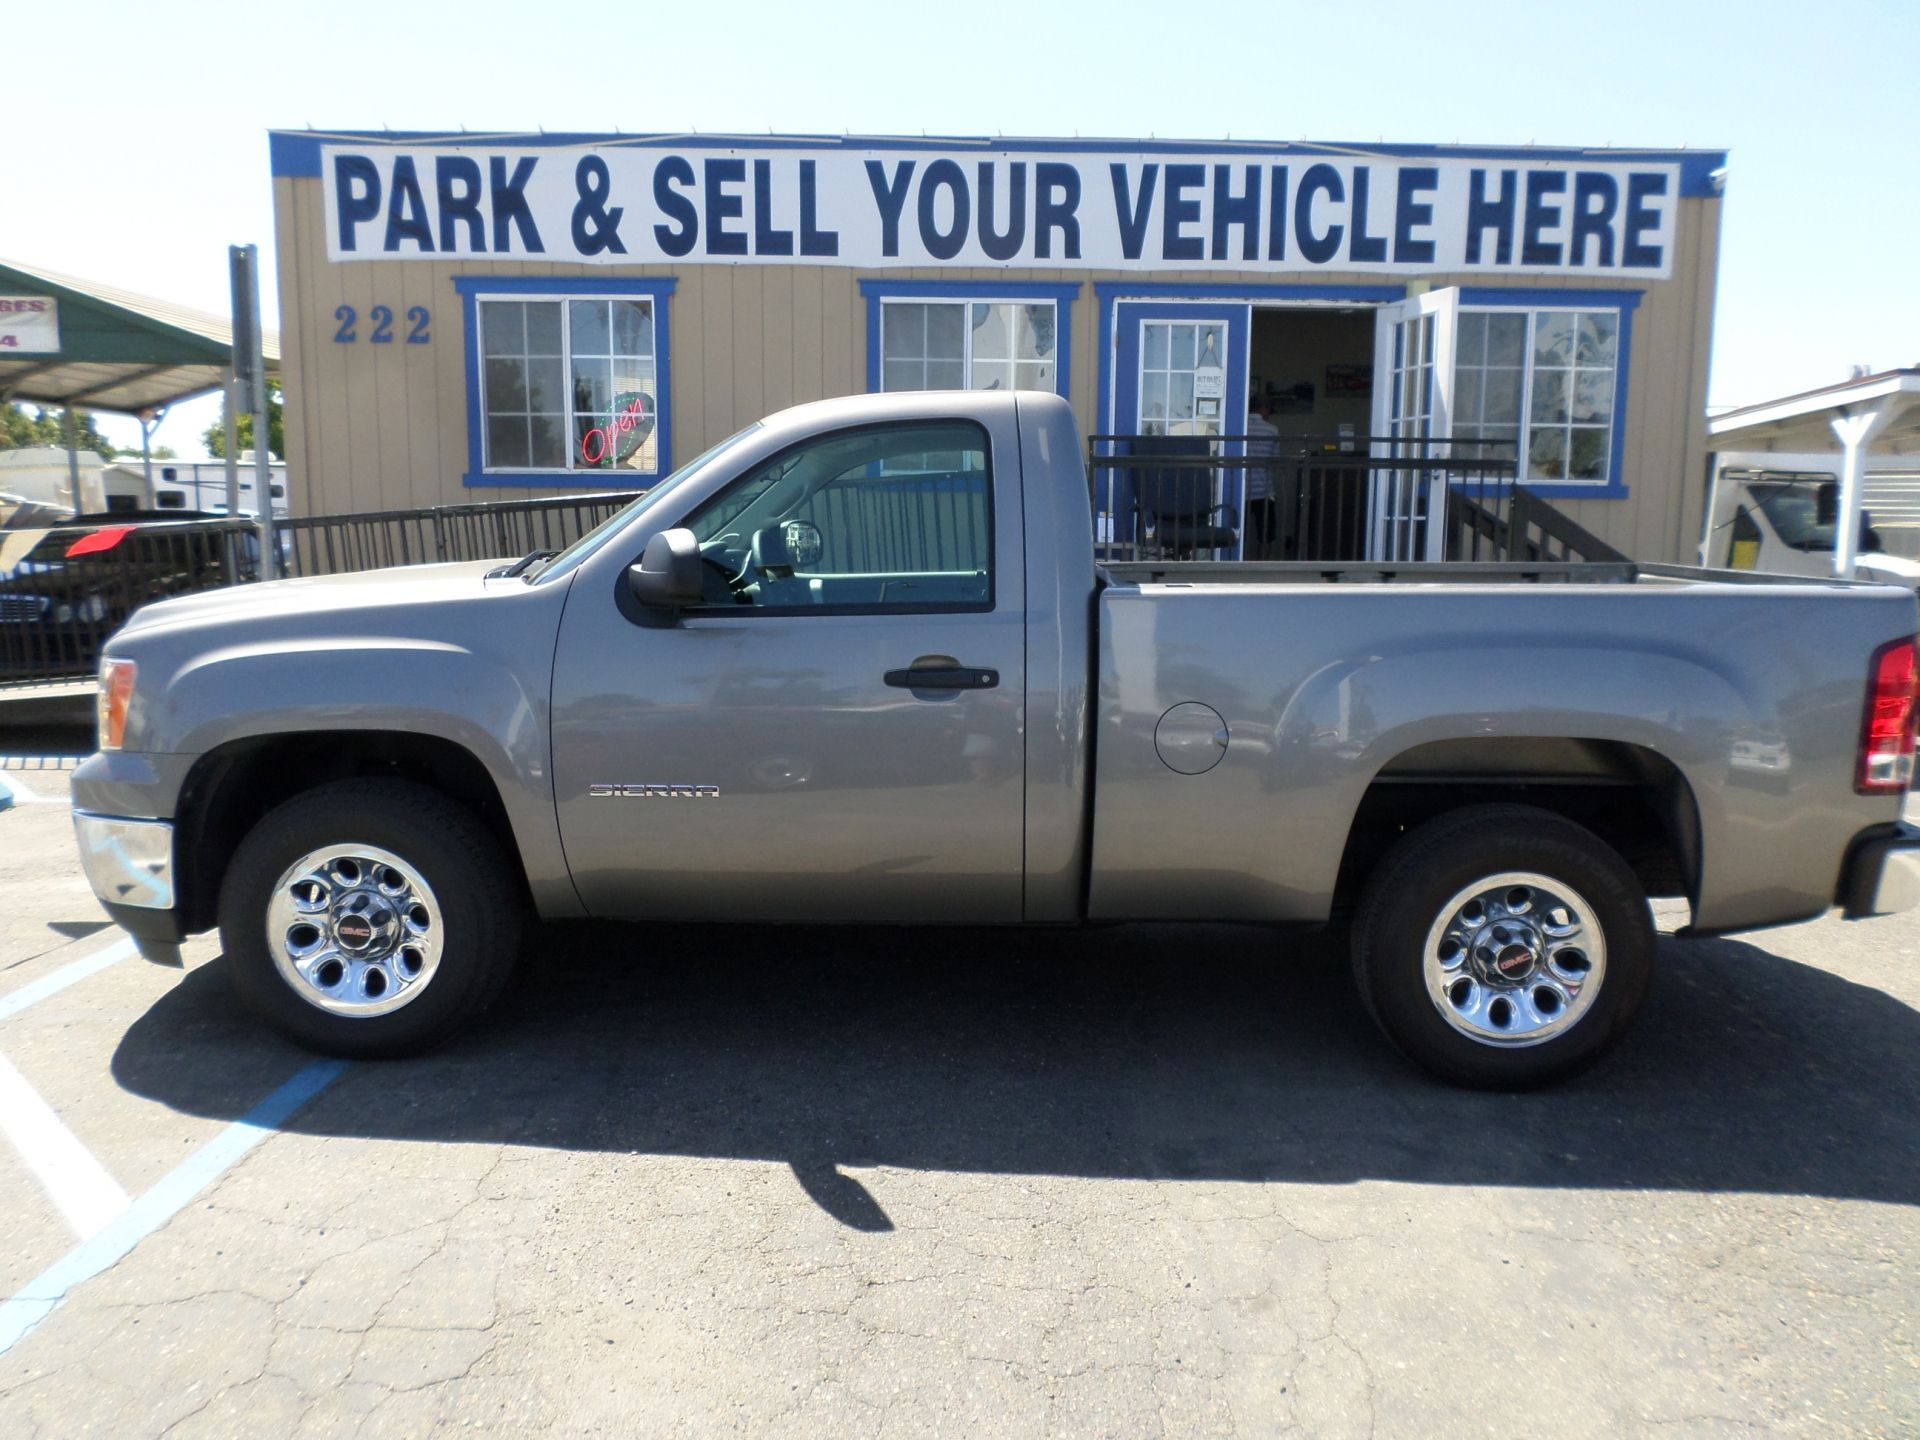 2013 Gmc 1500 Trucks For Sale Gmc Used Boat For Sale